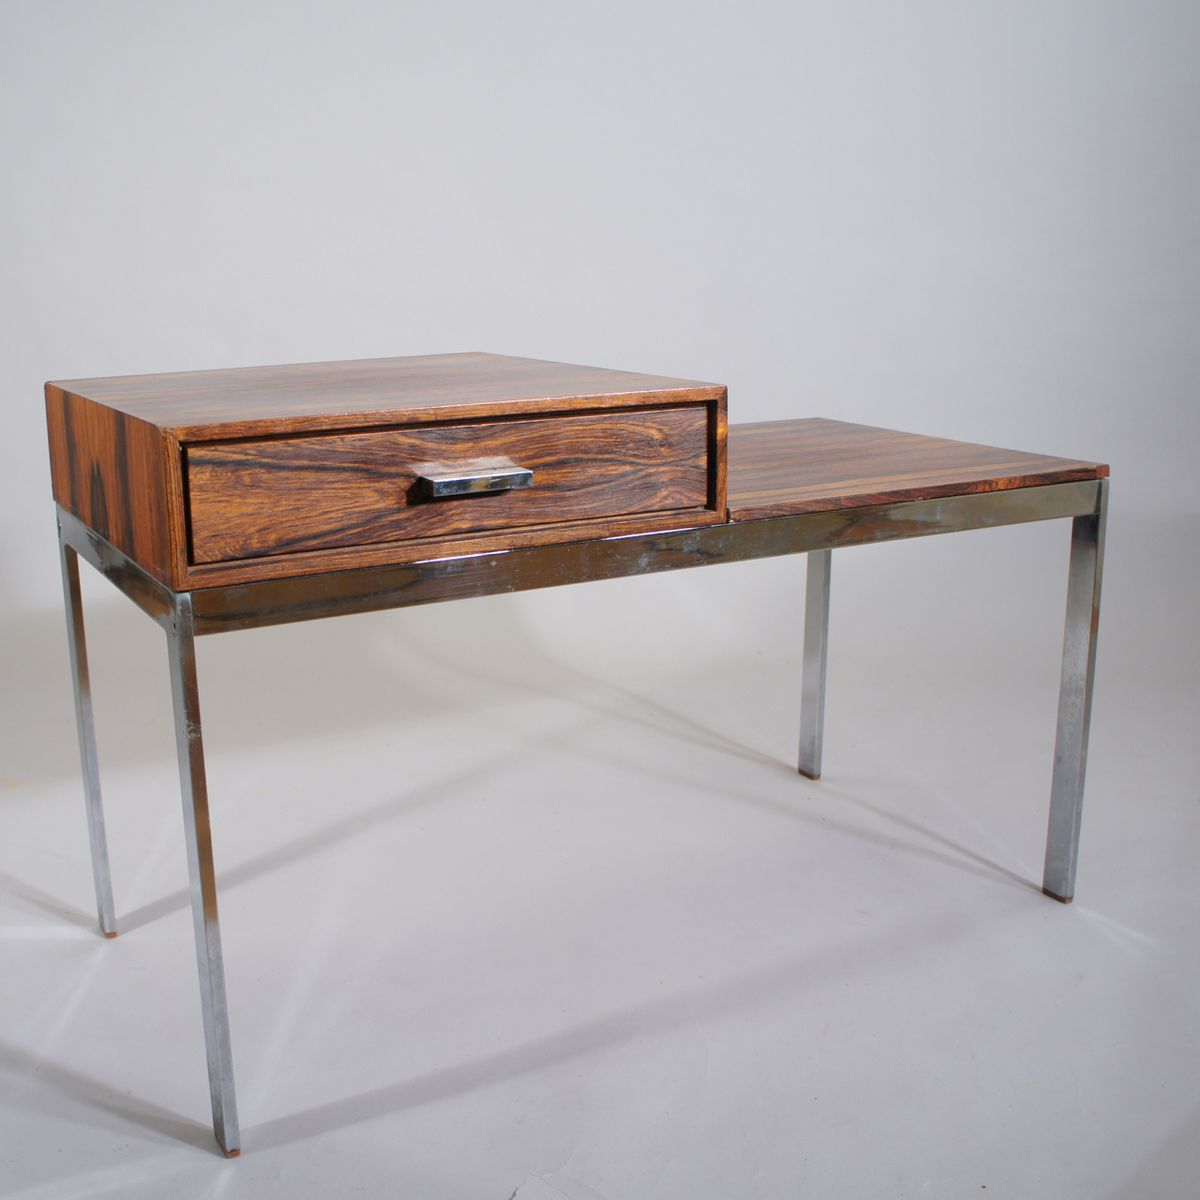 Mid Century Metal And Wood Alpacka Bench With Drawer By Gillis Lundgren For Ikea 1960s For Sale